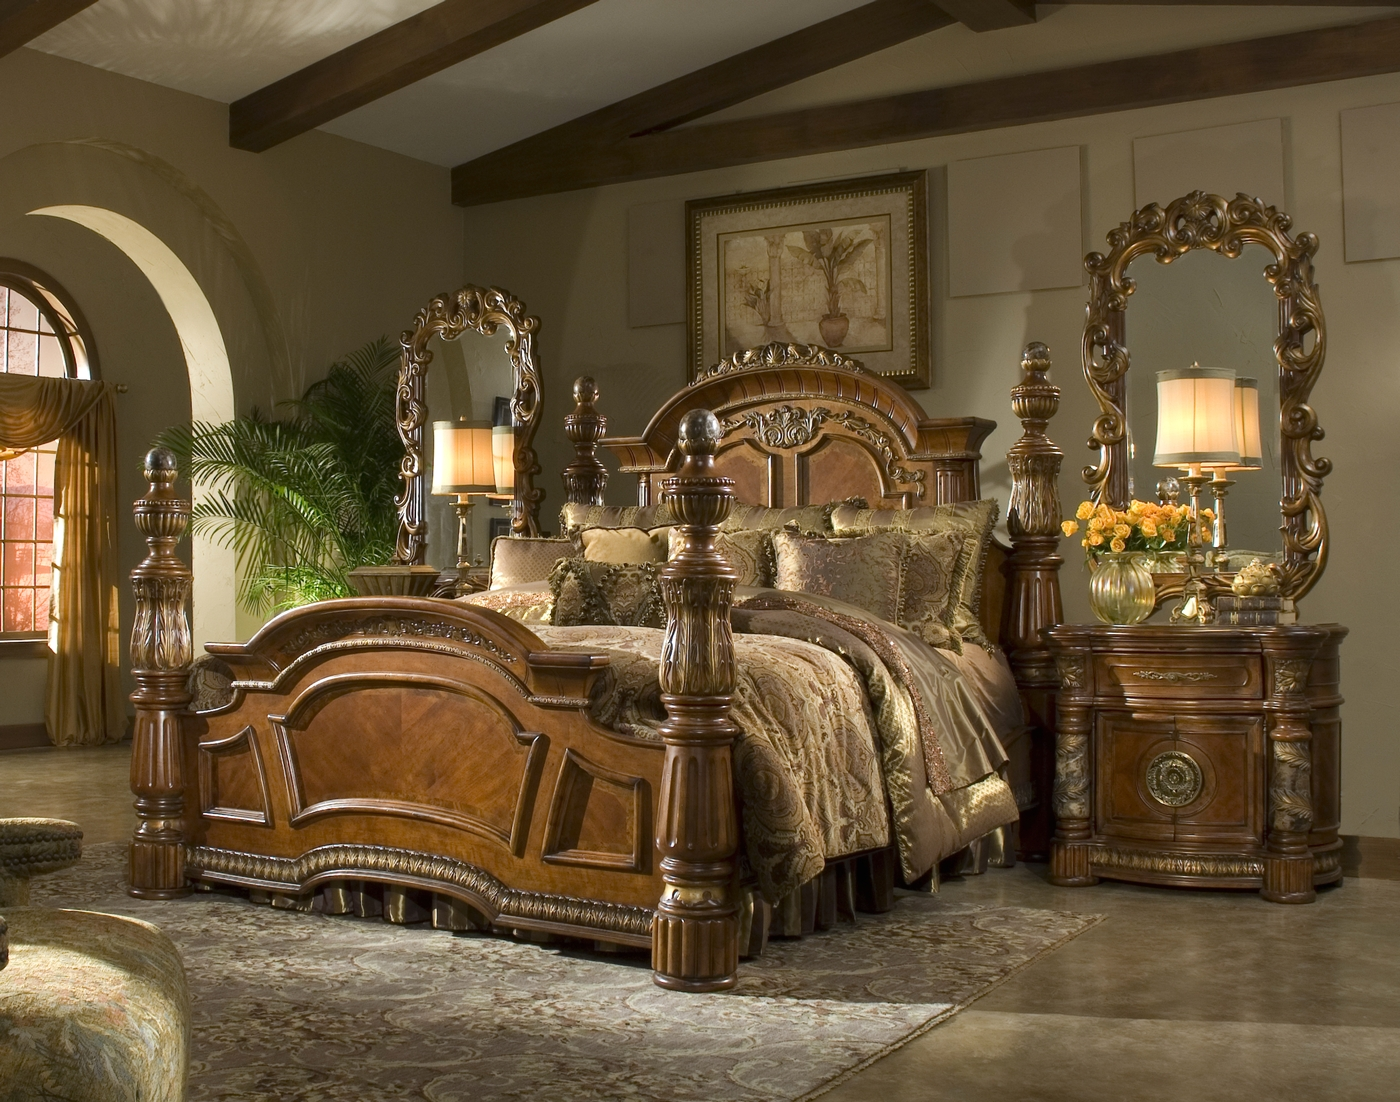 Villa Valencia Bedroom Set 4 Poster King Bedroom Set